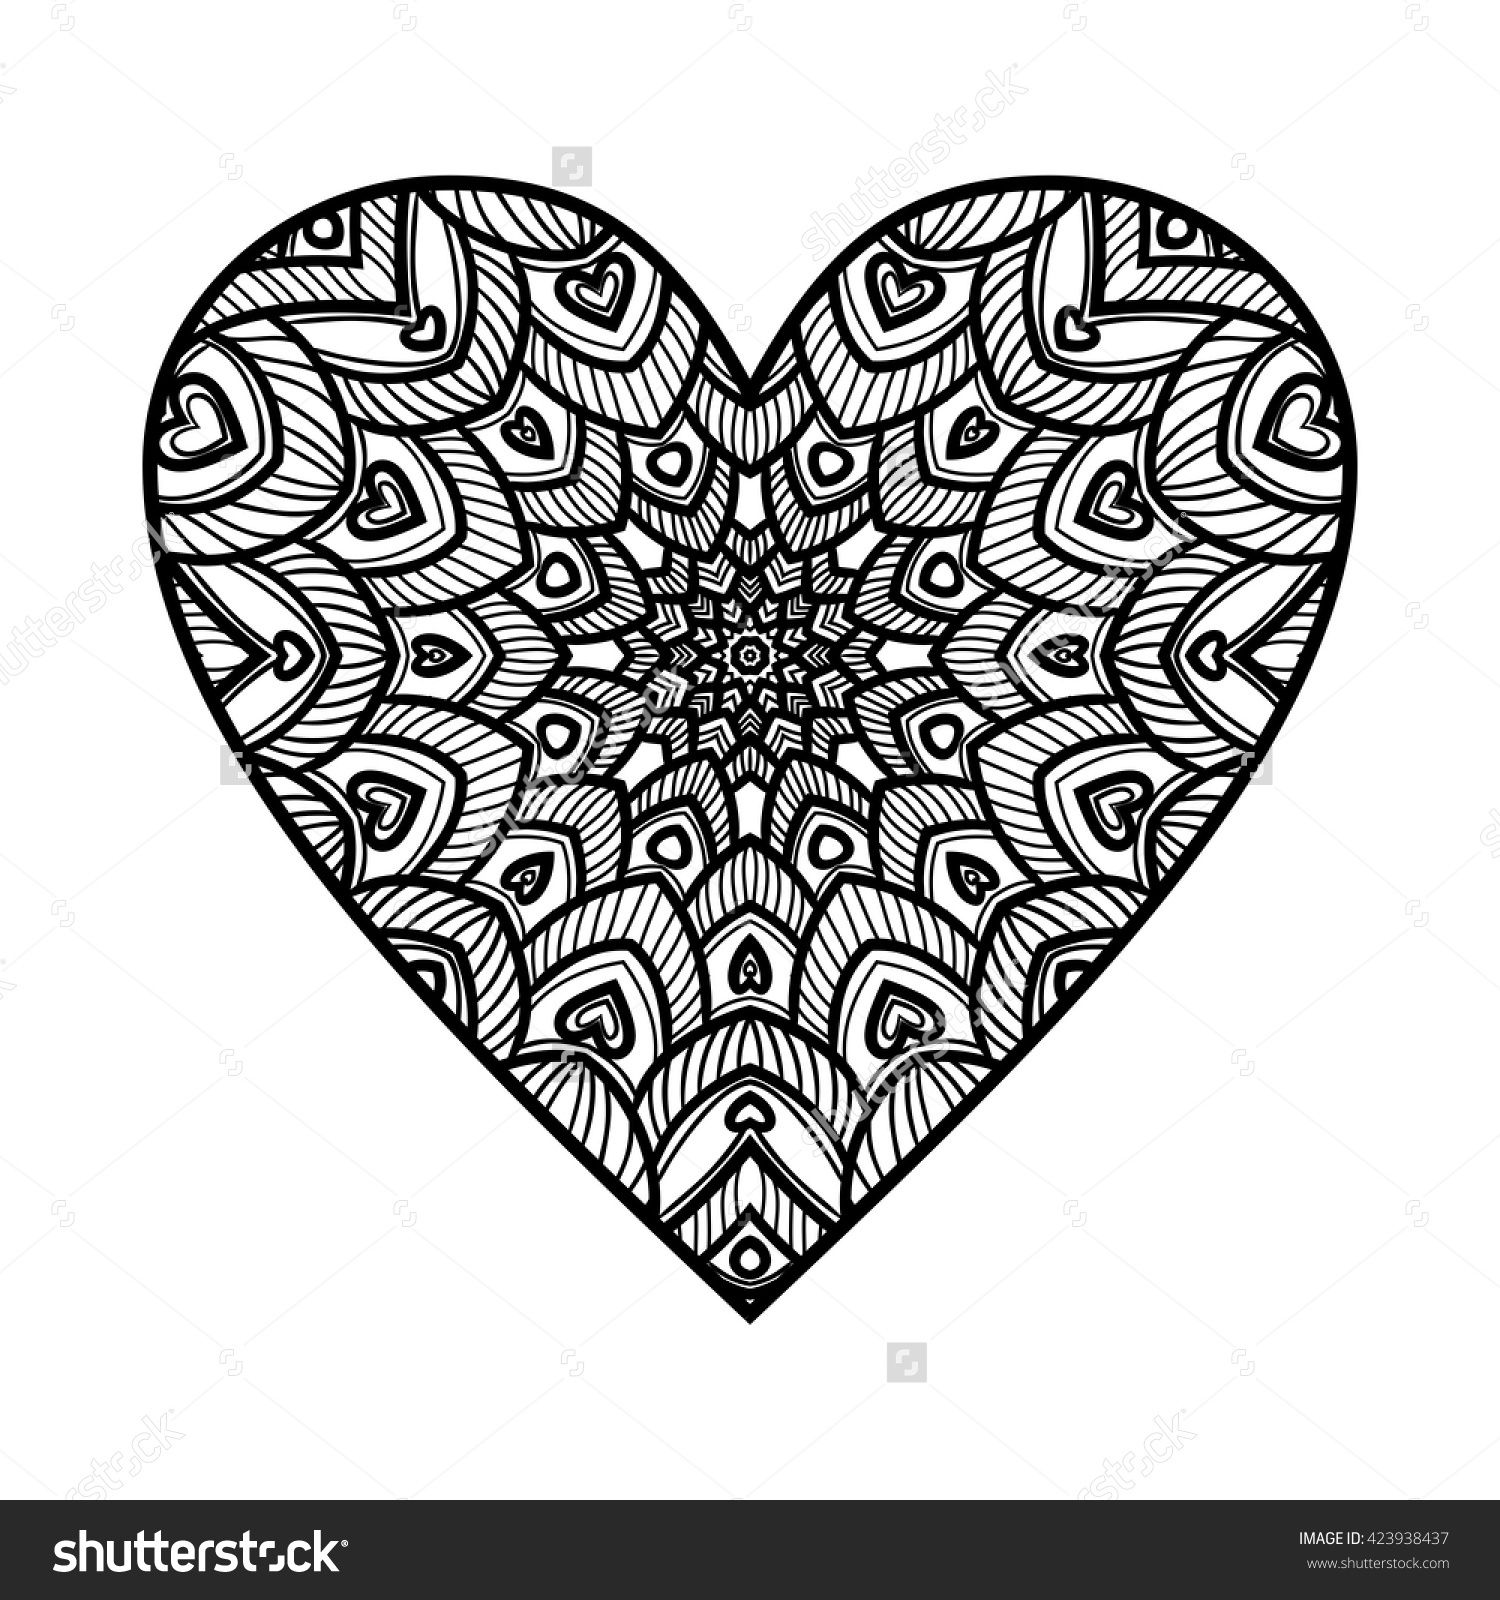 ornate heart mandala pattern coloring pages mandala pattern mandala coloring pages. Black Bedroom Furniture Sets. Home Design Ideas